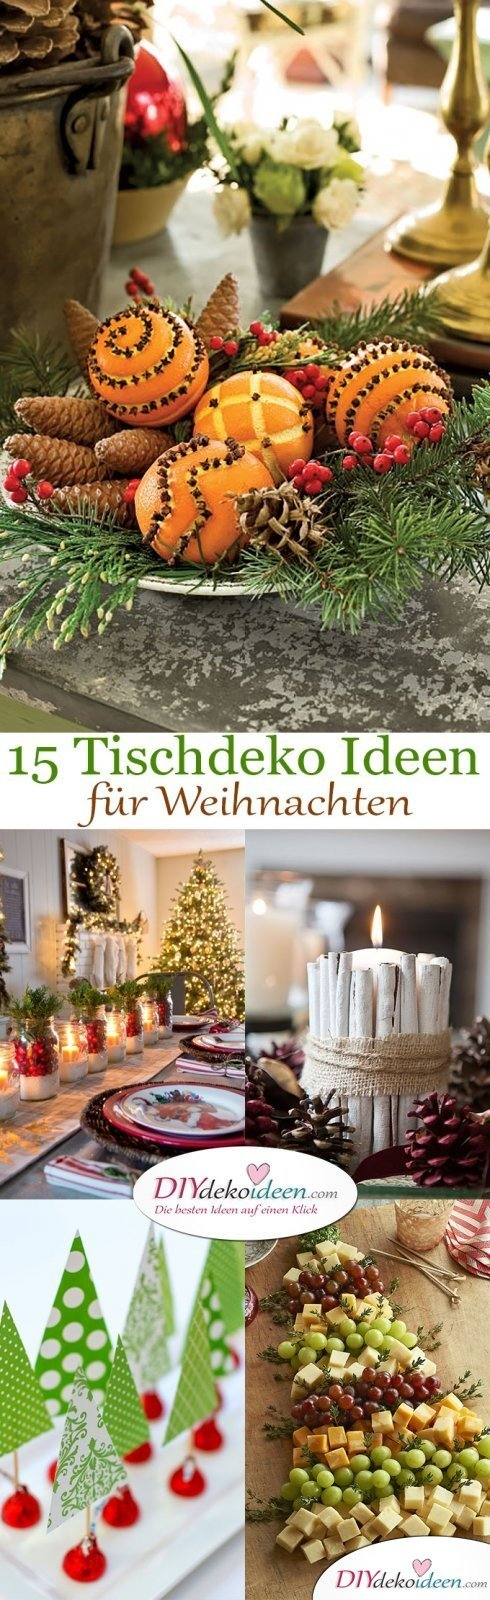 15 stimmungsvolle tischdeko ideen f r weihnachten. Black Bedroom Furniture Sets. Home Design Ideas